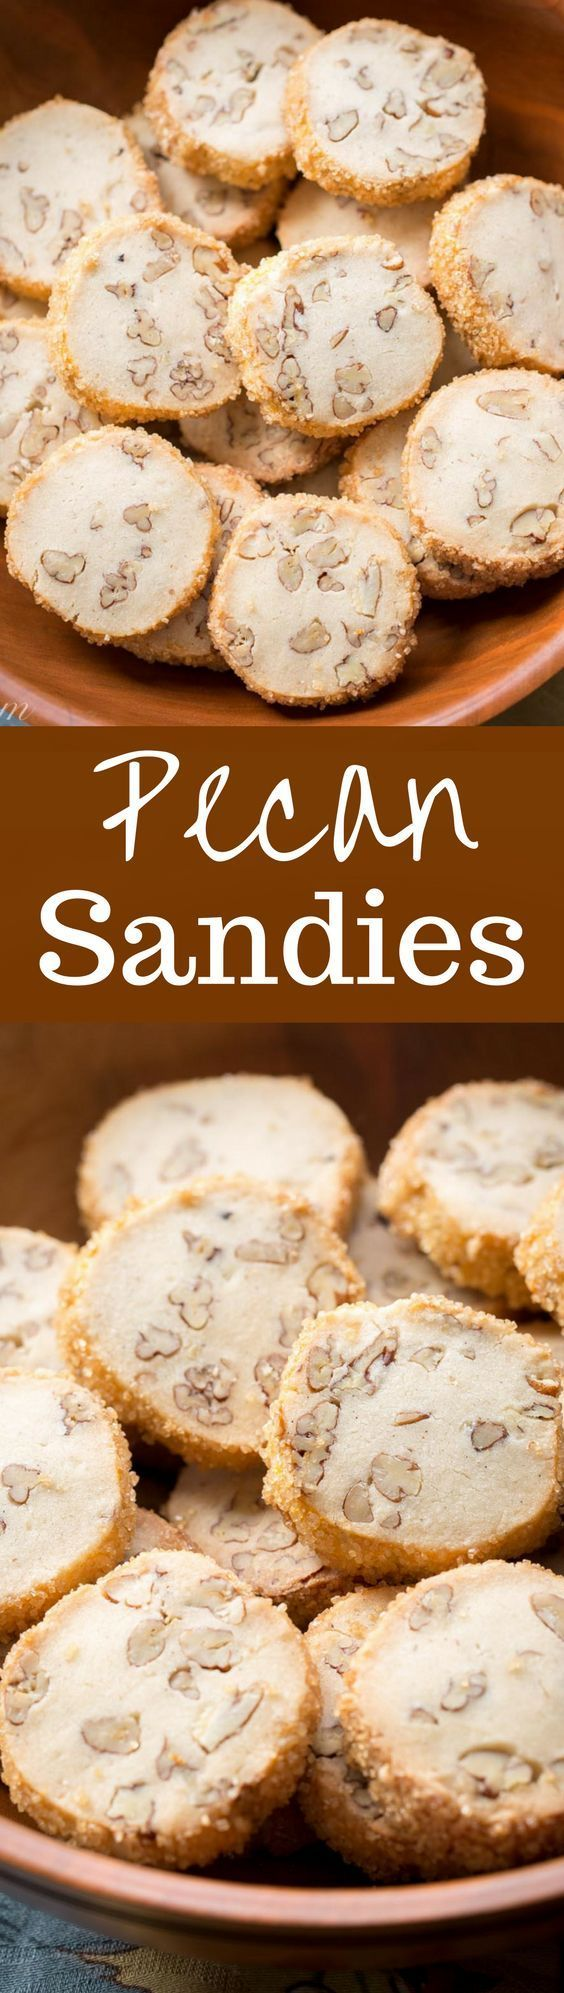 "Pecan Sandies ~ Classic shortbread cookies filled with toasted pecans and vanilla beans with a crisp coating of coarse sugar make these a wonderful and delicious ""perfect anytime cookie.""  http://www.savingdessert.com"